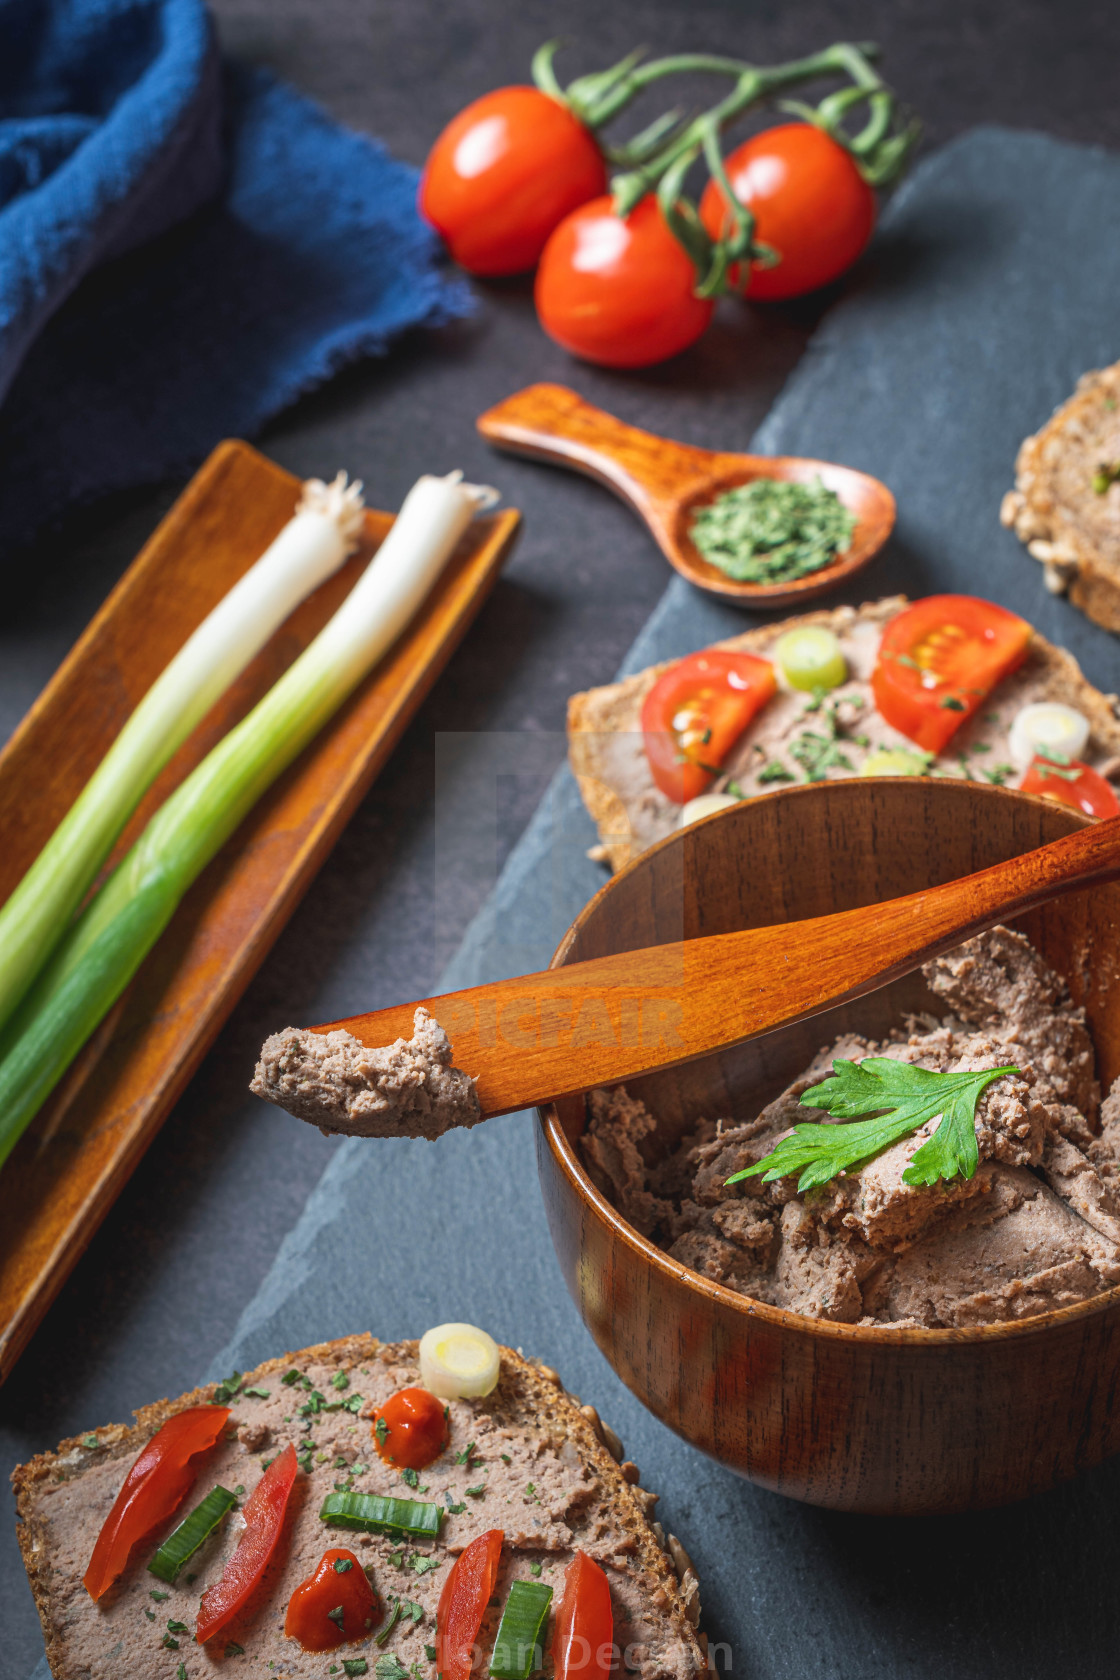 """""""Homemade Rustic Pate on Bitten Slice of Bread with Fresh Vegetables"""" stock image"""